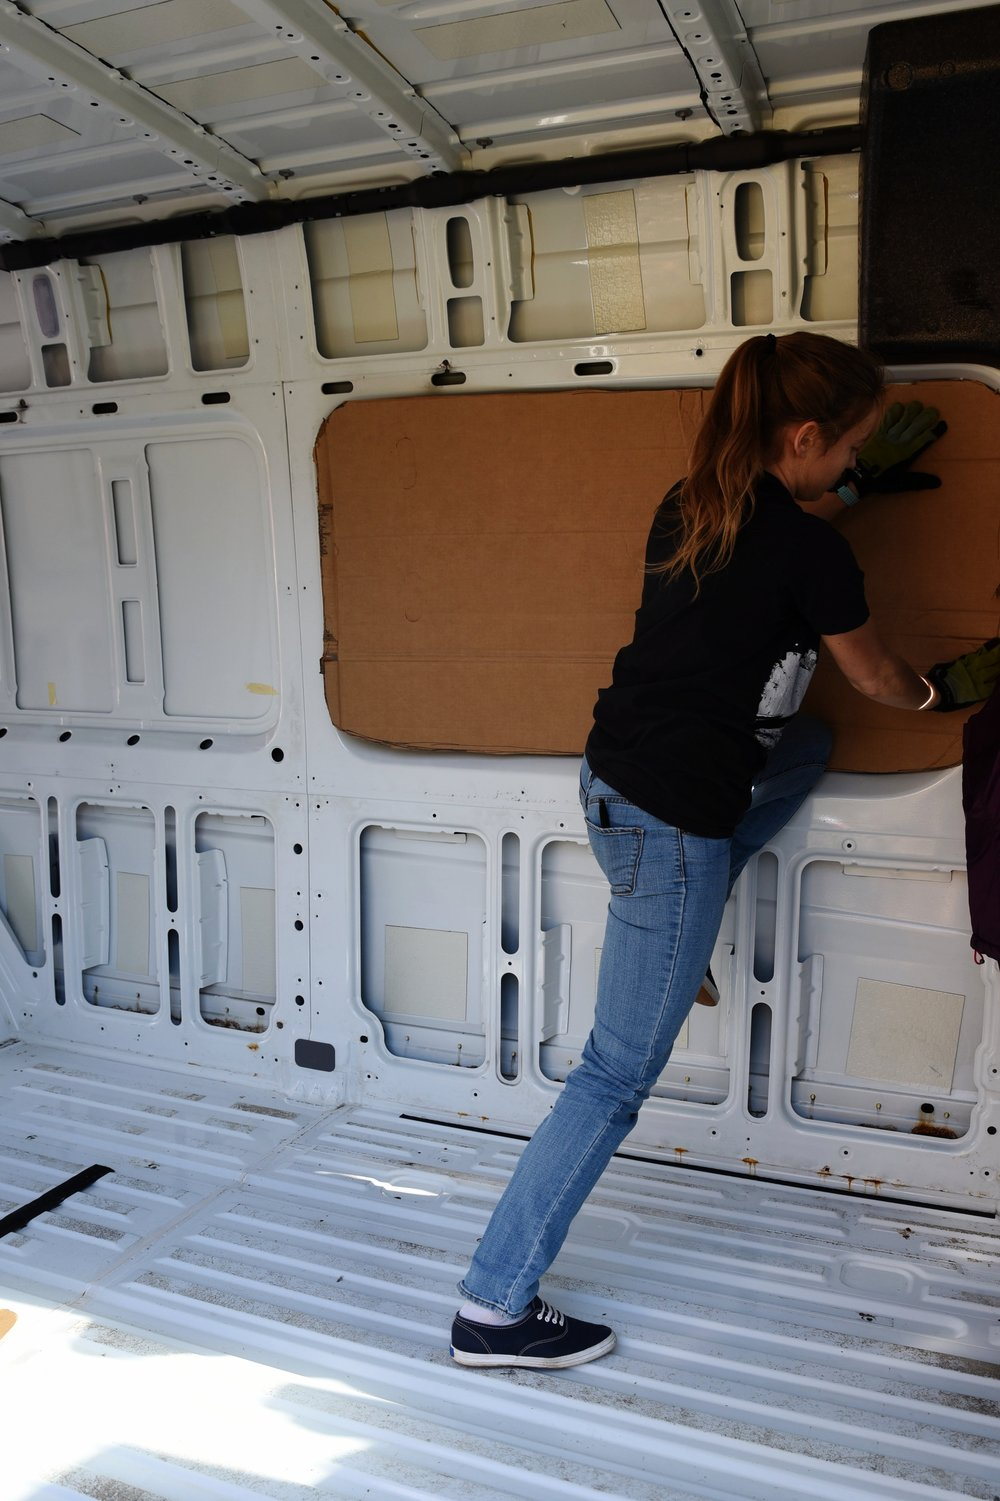 Kaylee test fits the template inside the van.